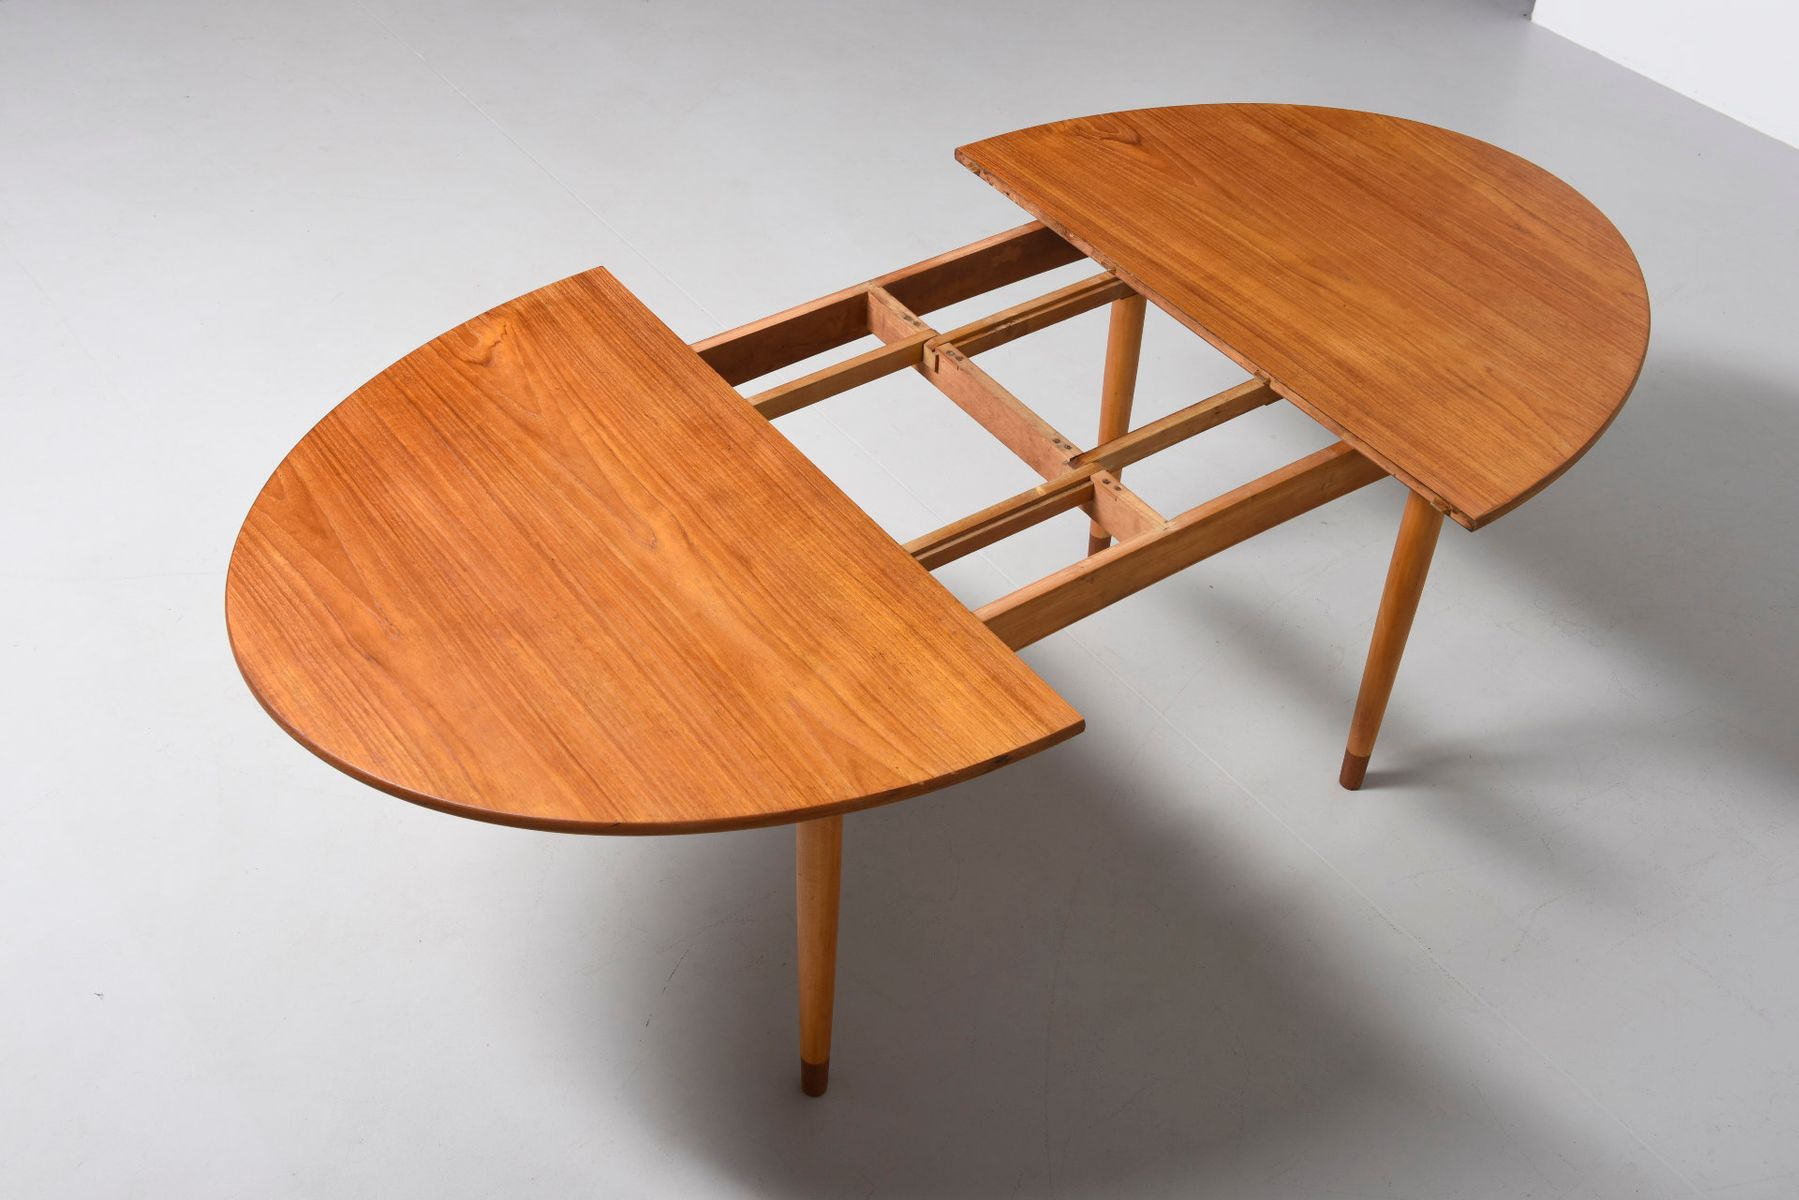 Teak Oval Dining Table Mid Century Oval Dining Table In Teak By Brge Mogensen For Soborg